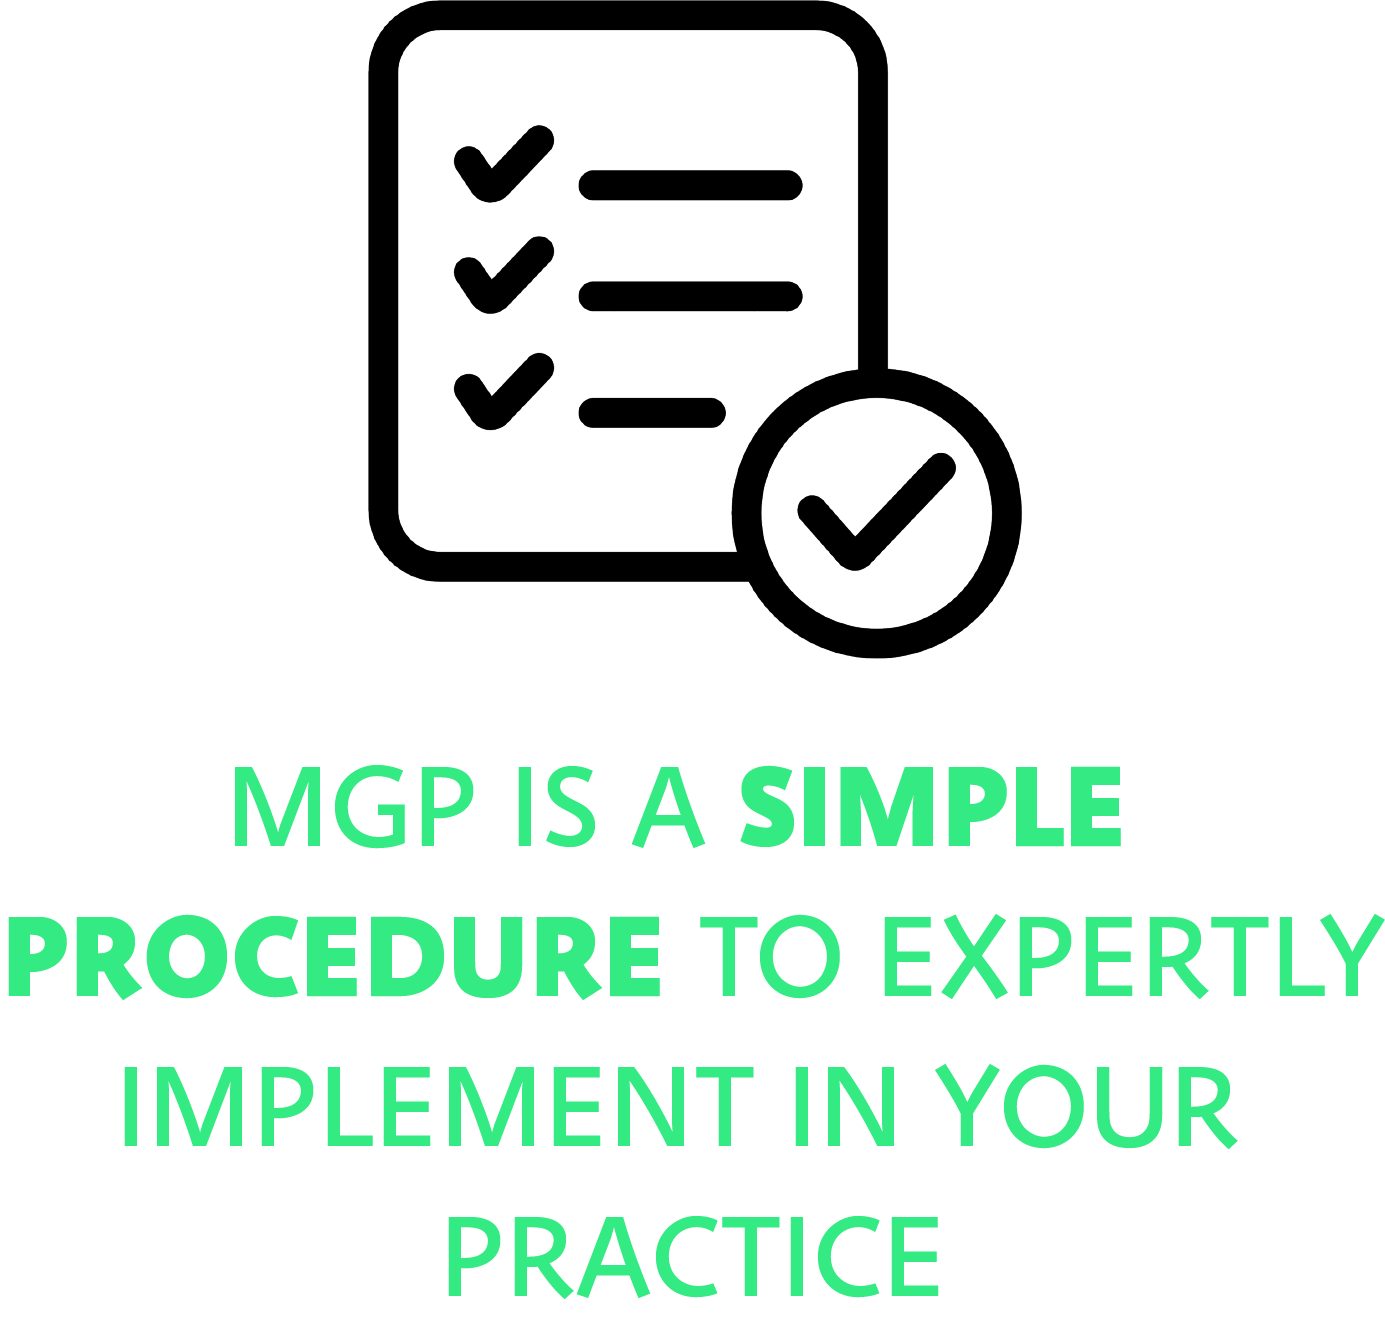 MGP is a simple procedure to expertly implement in your practice. The Maskin Protocol for Meibomian Gland Probing is a safe and effective way to clear glands of constricting bands of scar tissue and equilibrate pressure within gland ducts.